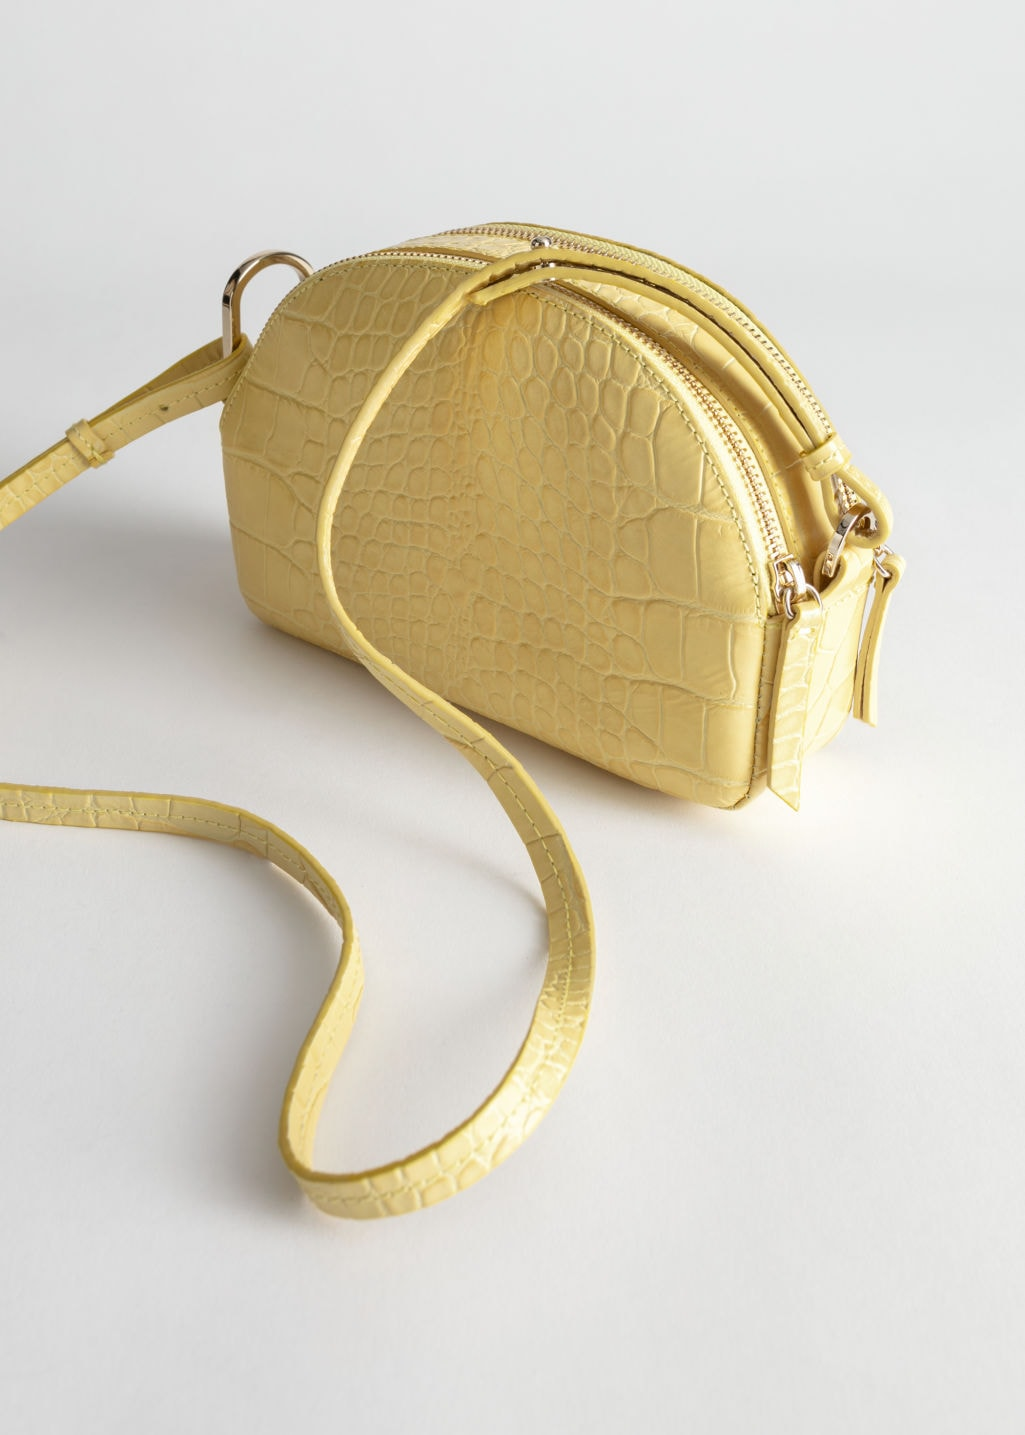 & Other Stories Yellow Leather Croc Purse